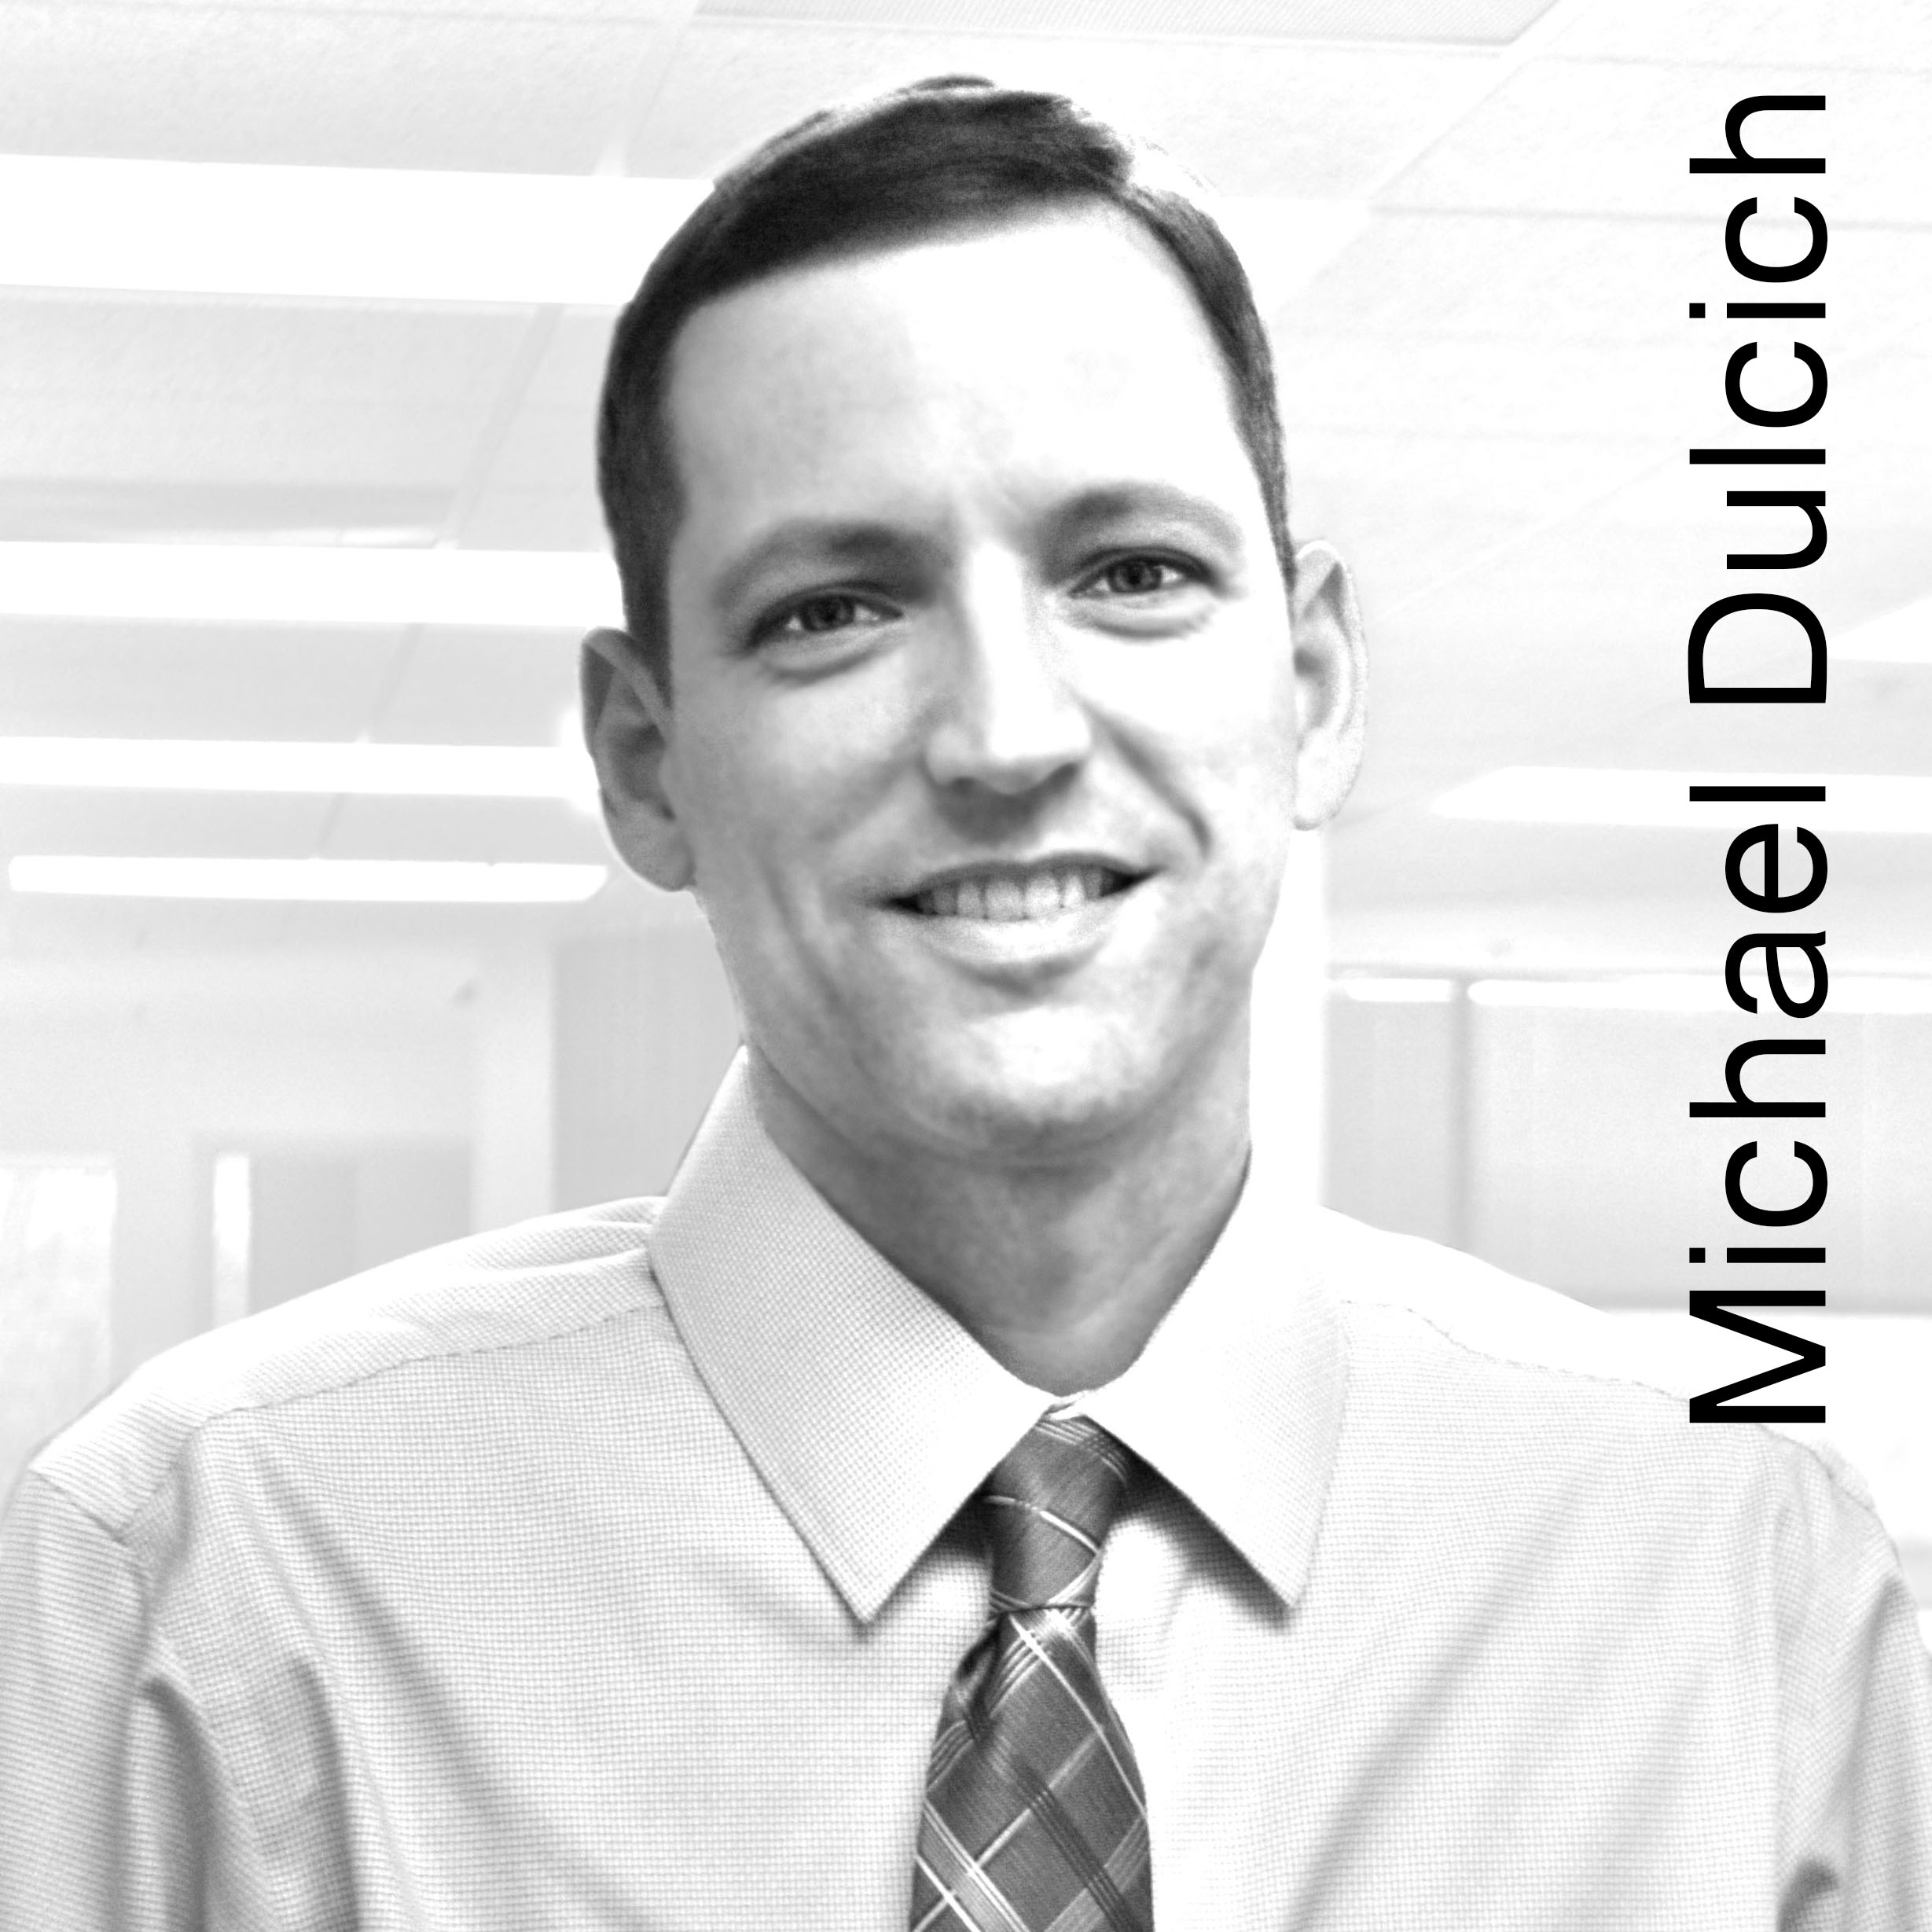 michael_dulcich_square_copy8.jpg